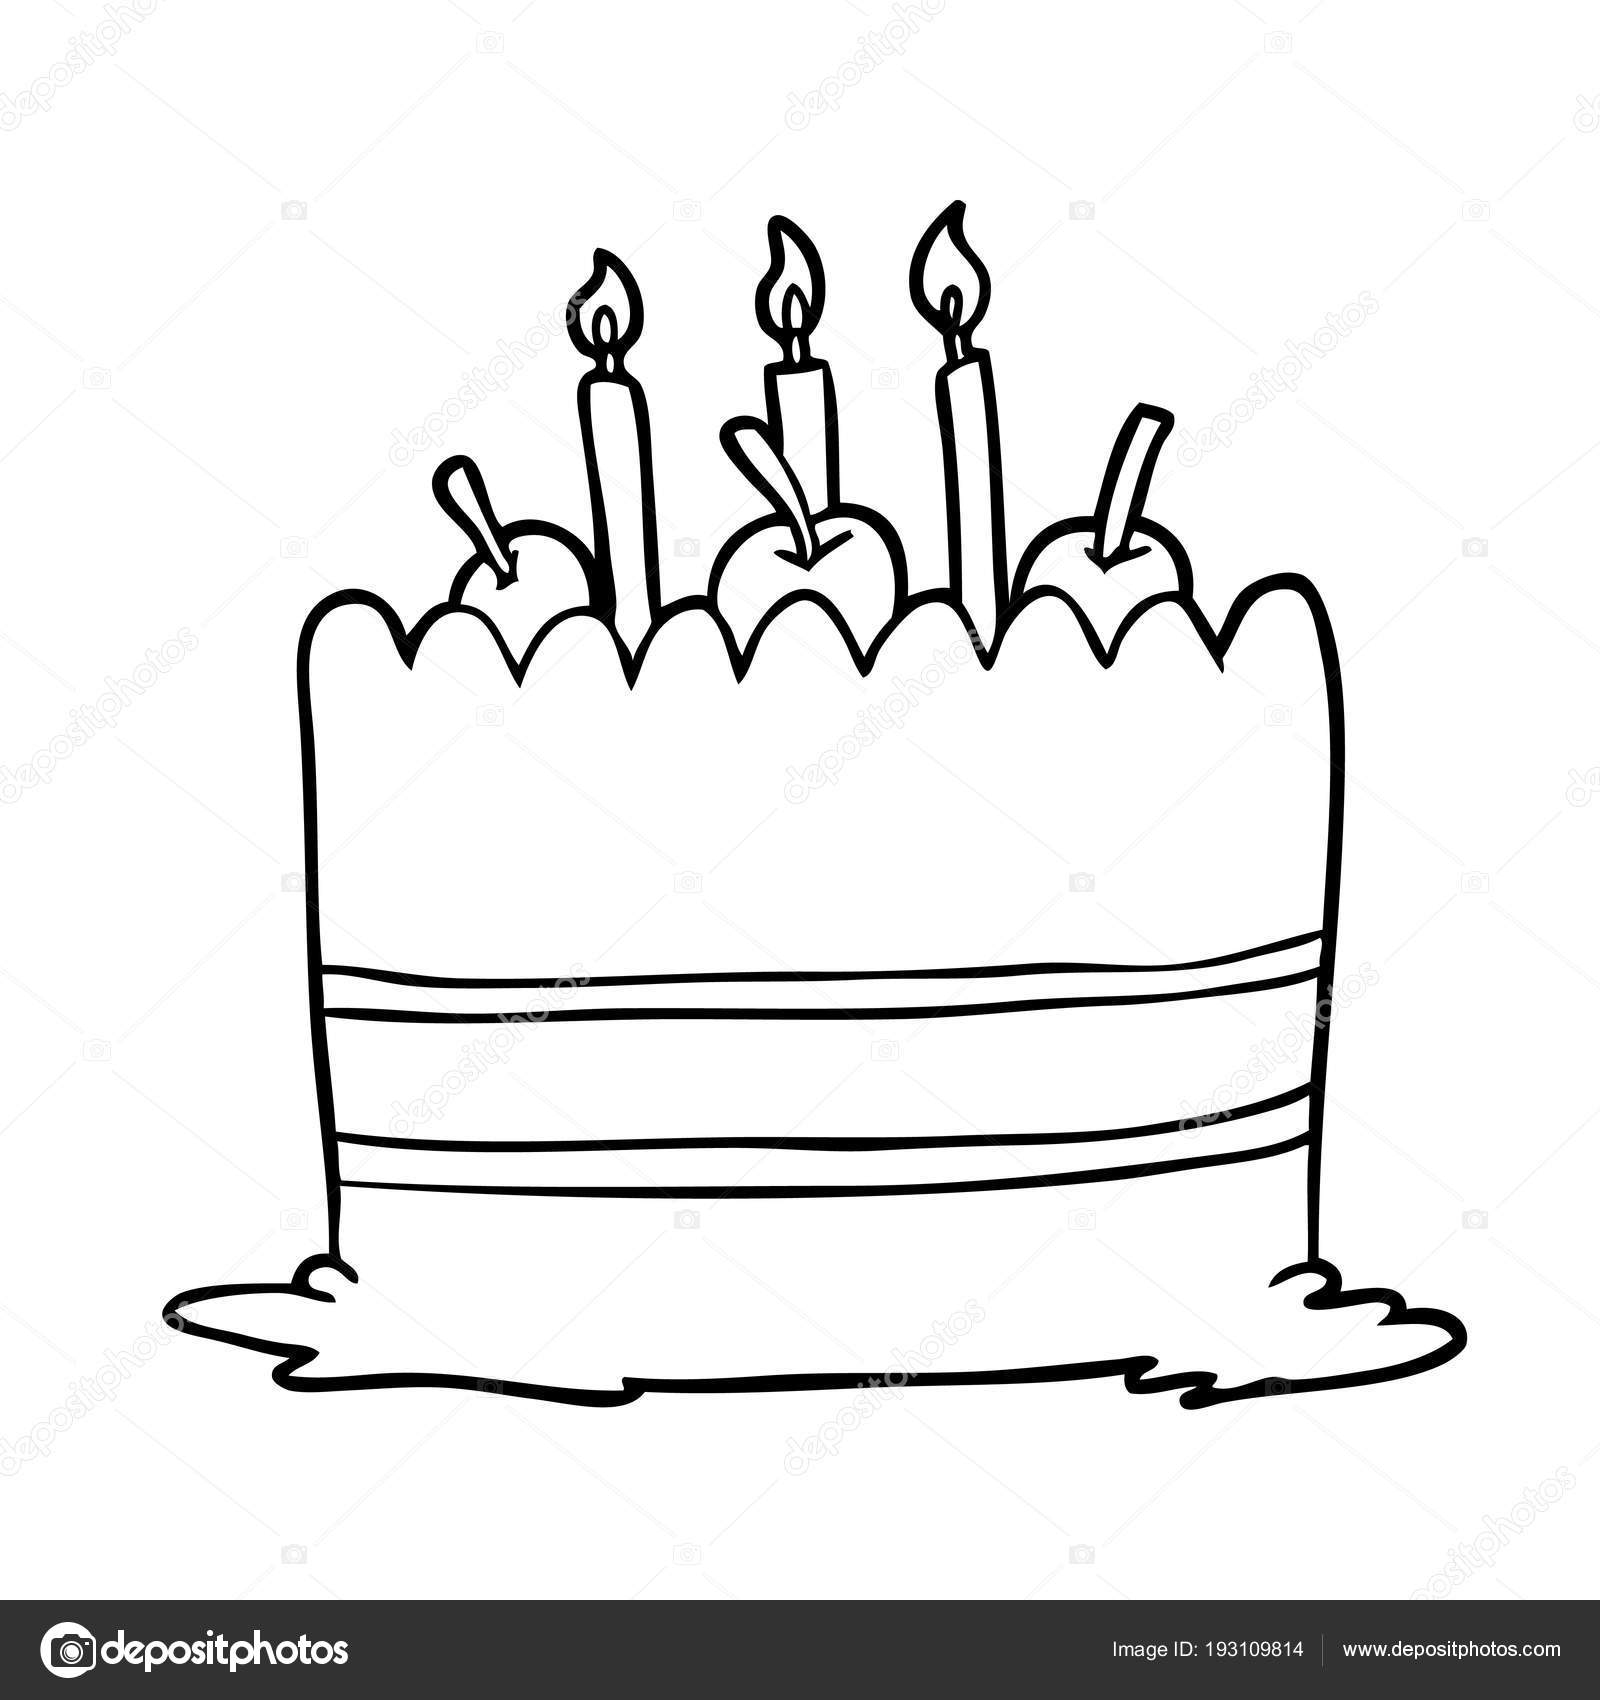 Peachy Drawings Of A Birthday Cake Line Drawing Birthday Cake Stock Funny Birthday Cards Online Alyptdamsfinfo